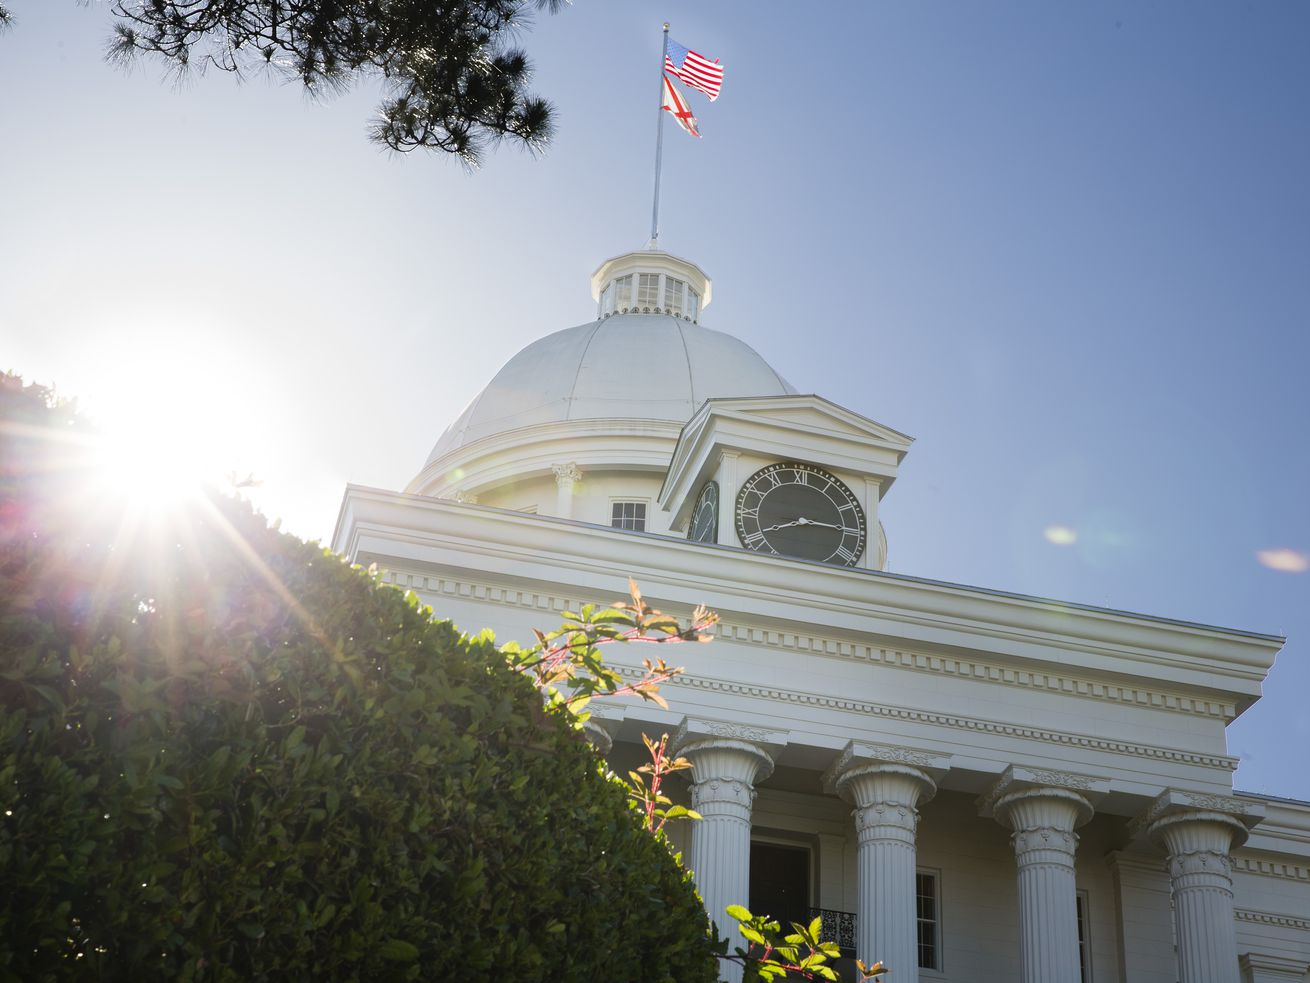 The Alabama State Capitol building in Montgomery.